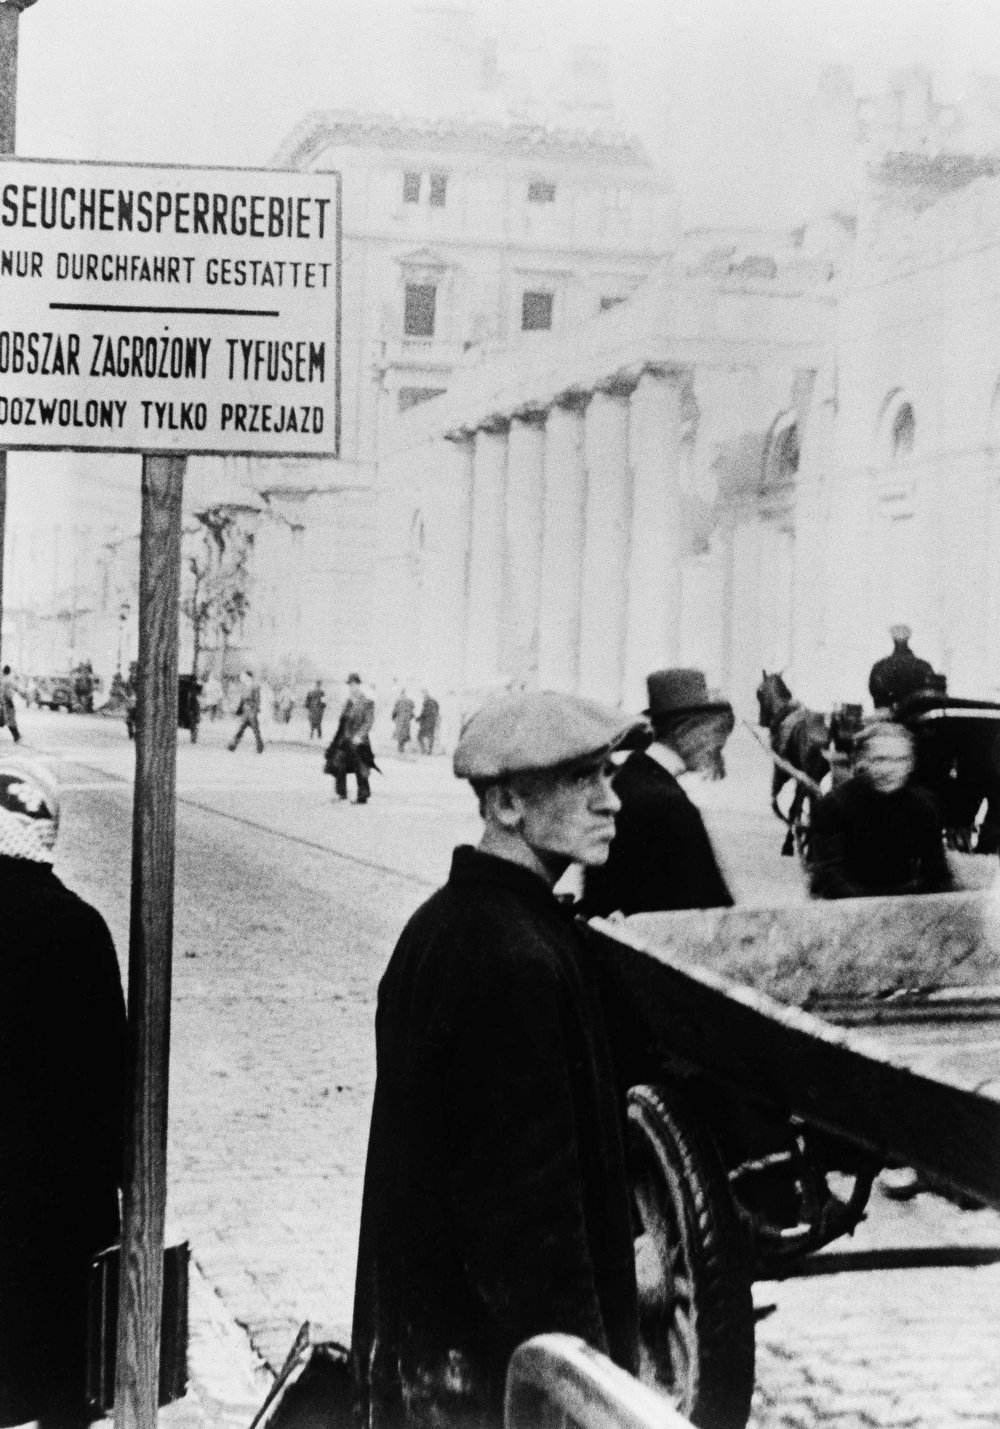 ". Sign at the entrance to the Jewish Ghetto in Warsaw Plague reads: ""Barred section only through fare permitted\"", Feb. 10, 1941, Warsaw, Poland.  (AP Photo)"